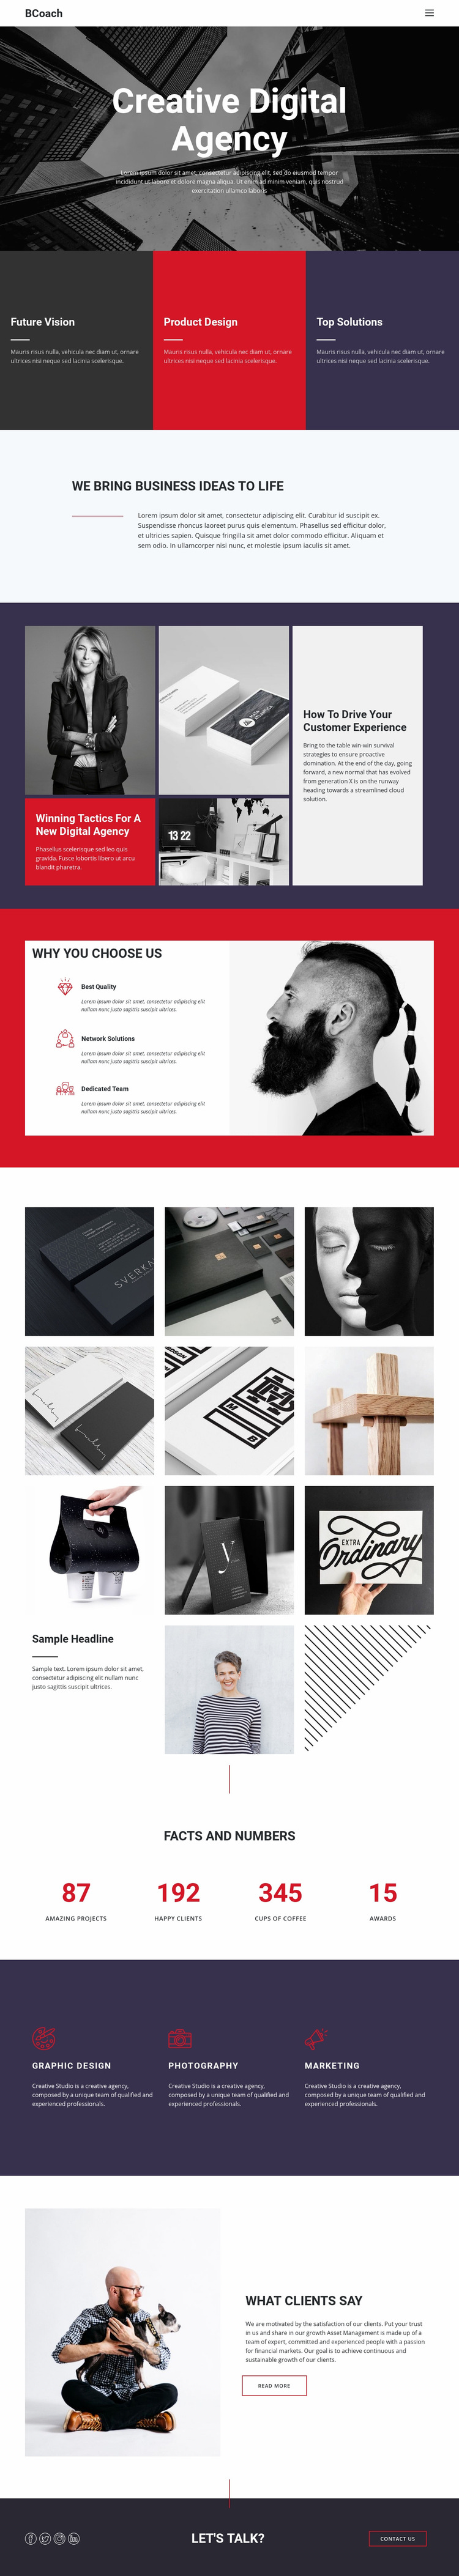 Digitize your products Web Page Design